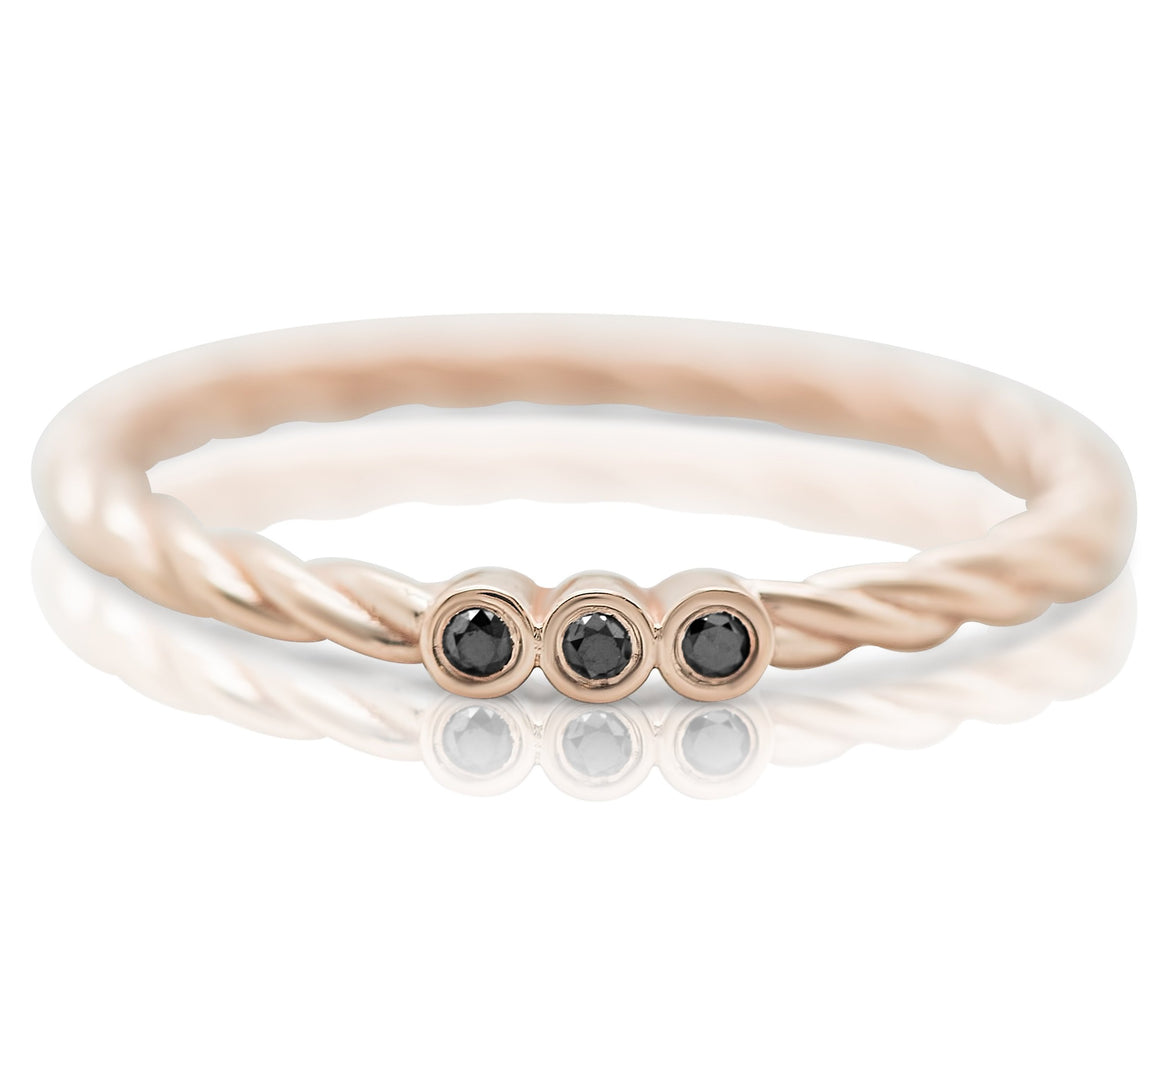 Rose gold braided band and black diamond stack ring